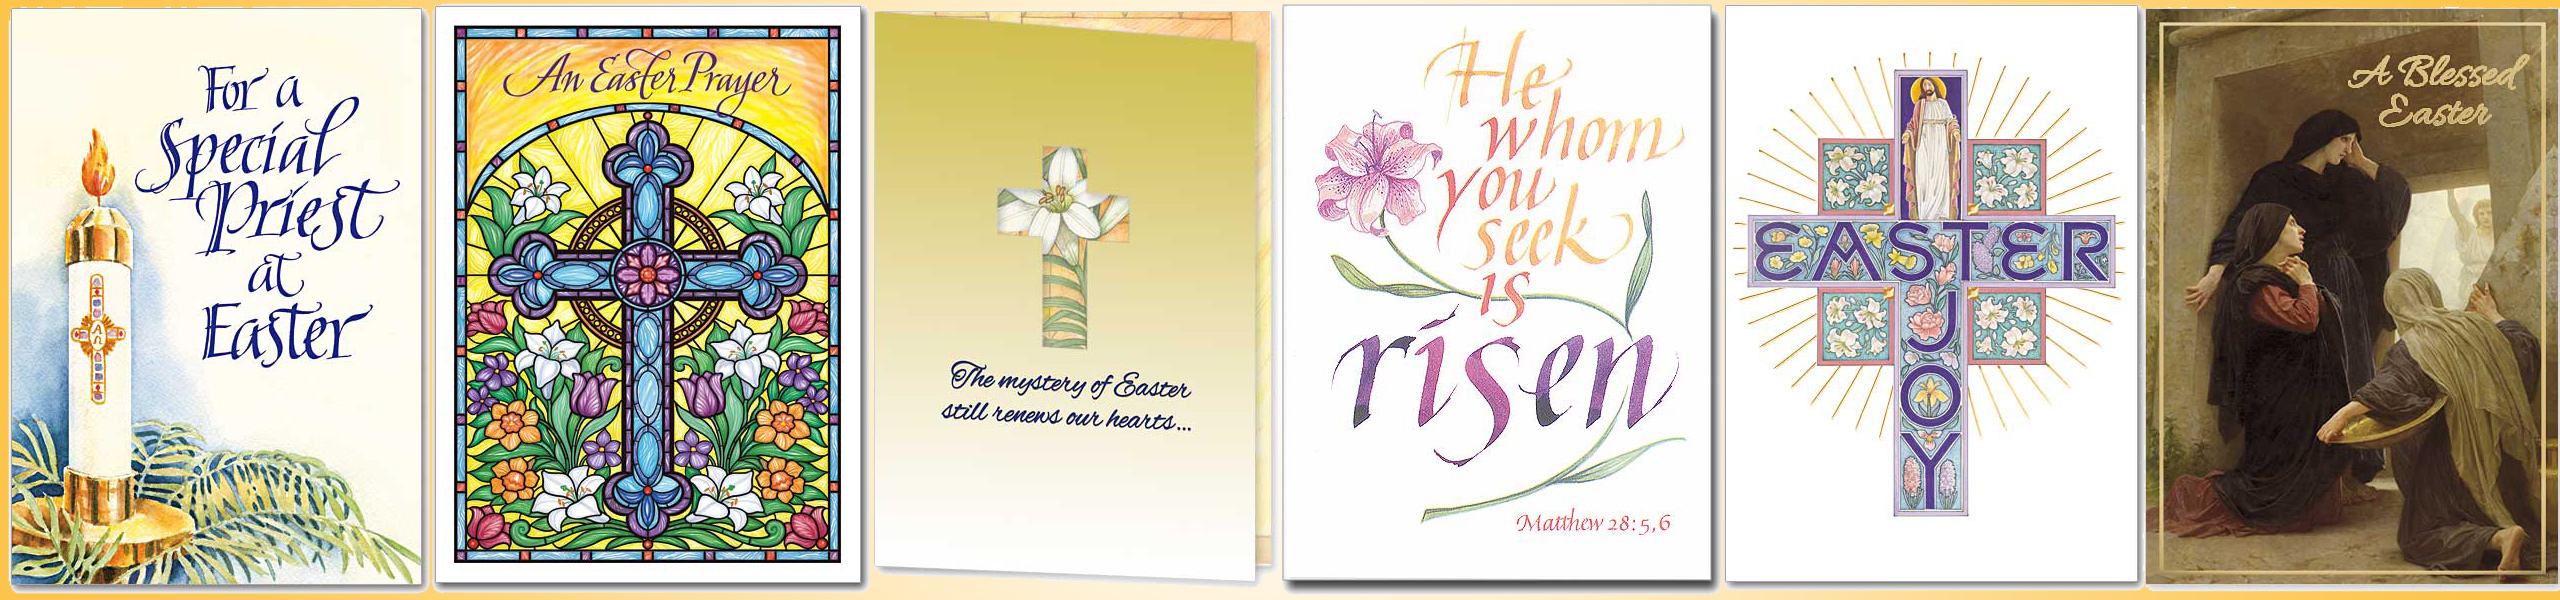 Christian greeting cards christmas cards gifts religious 1 2 3 5 kristyandbryce Image collections